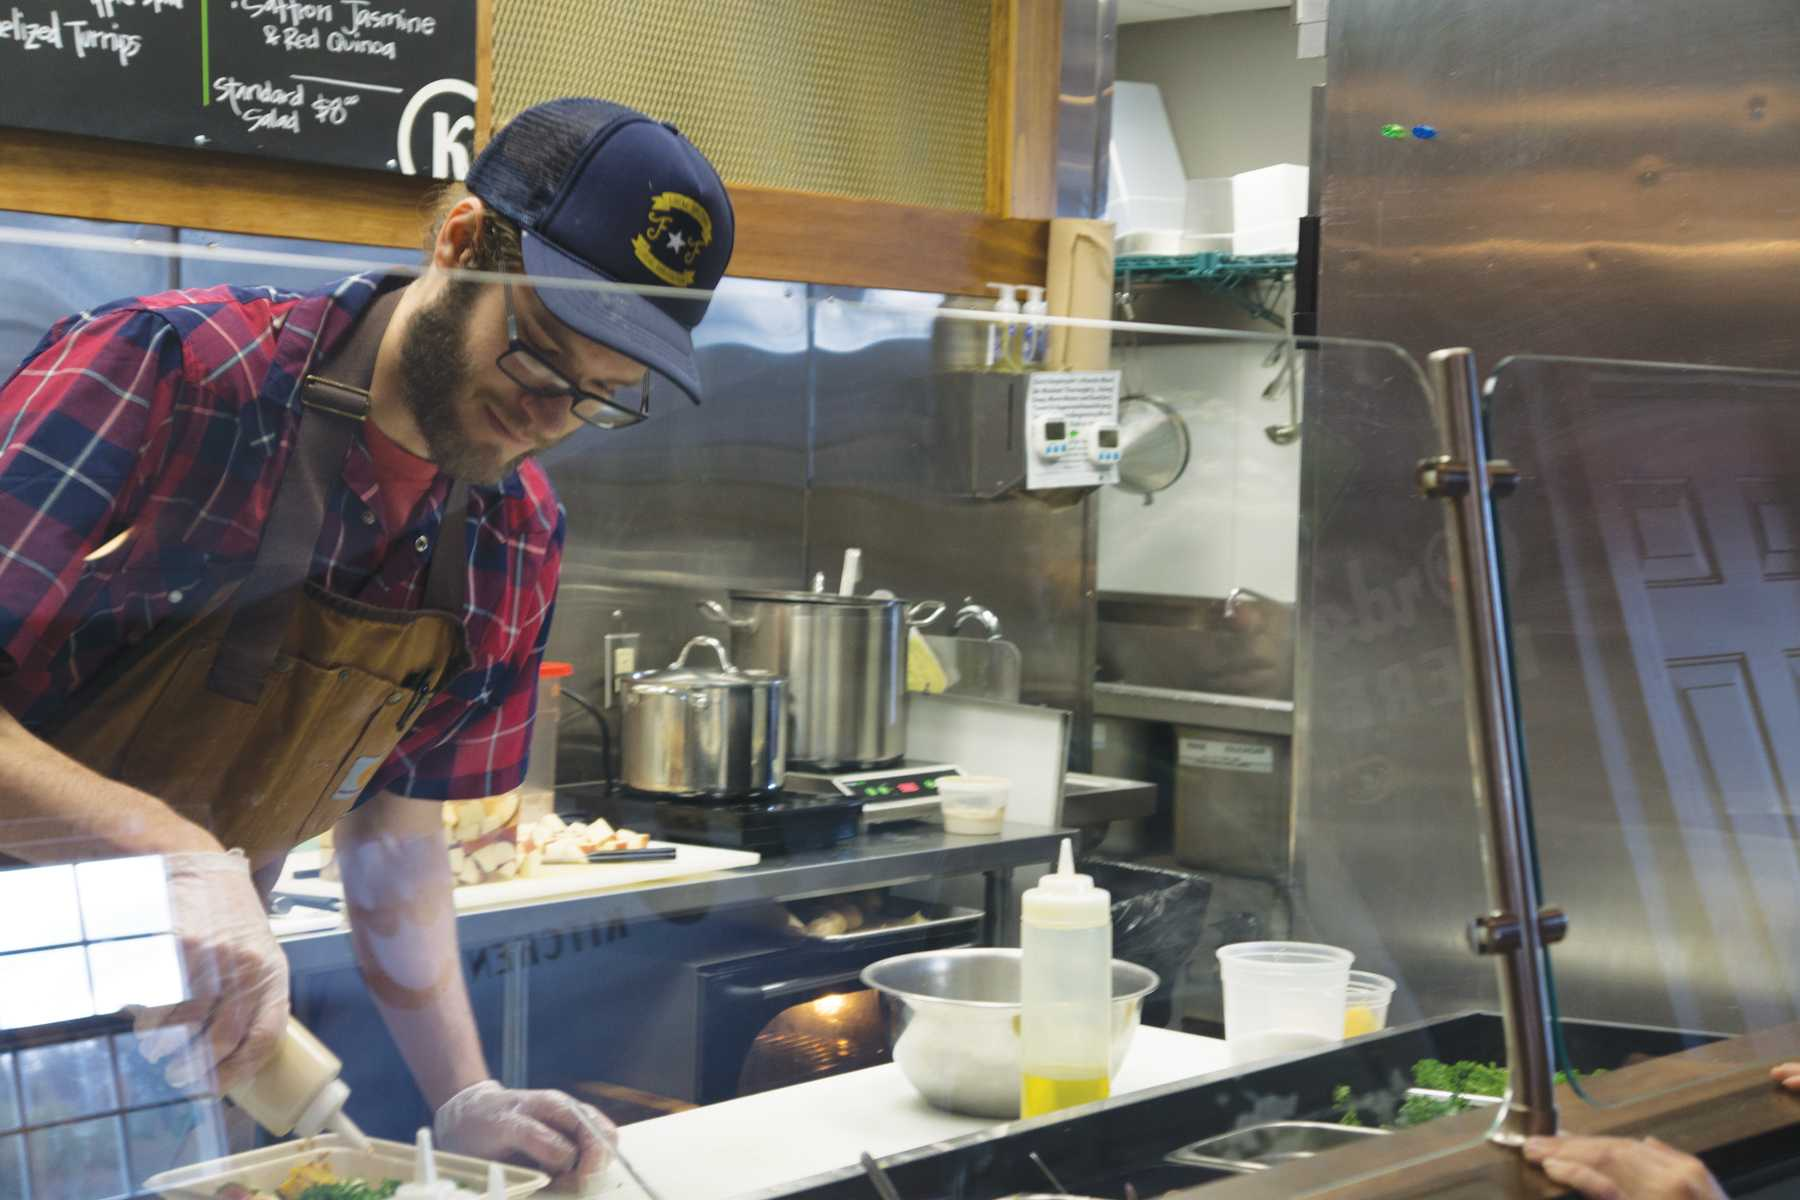 Will Crowell prepares one of Kindly Kitchen's made-to-order bowls. All food served is plant based and locally sourced.